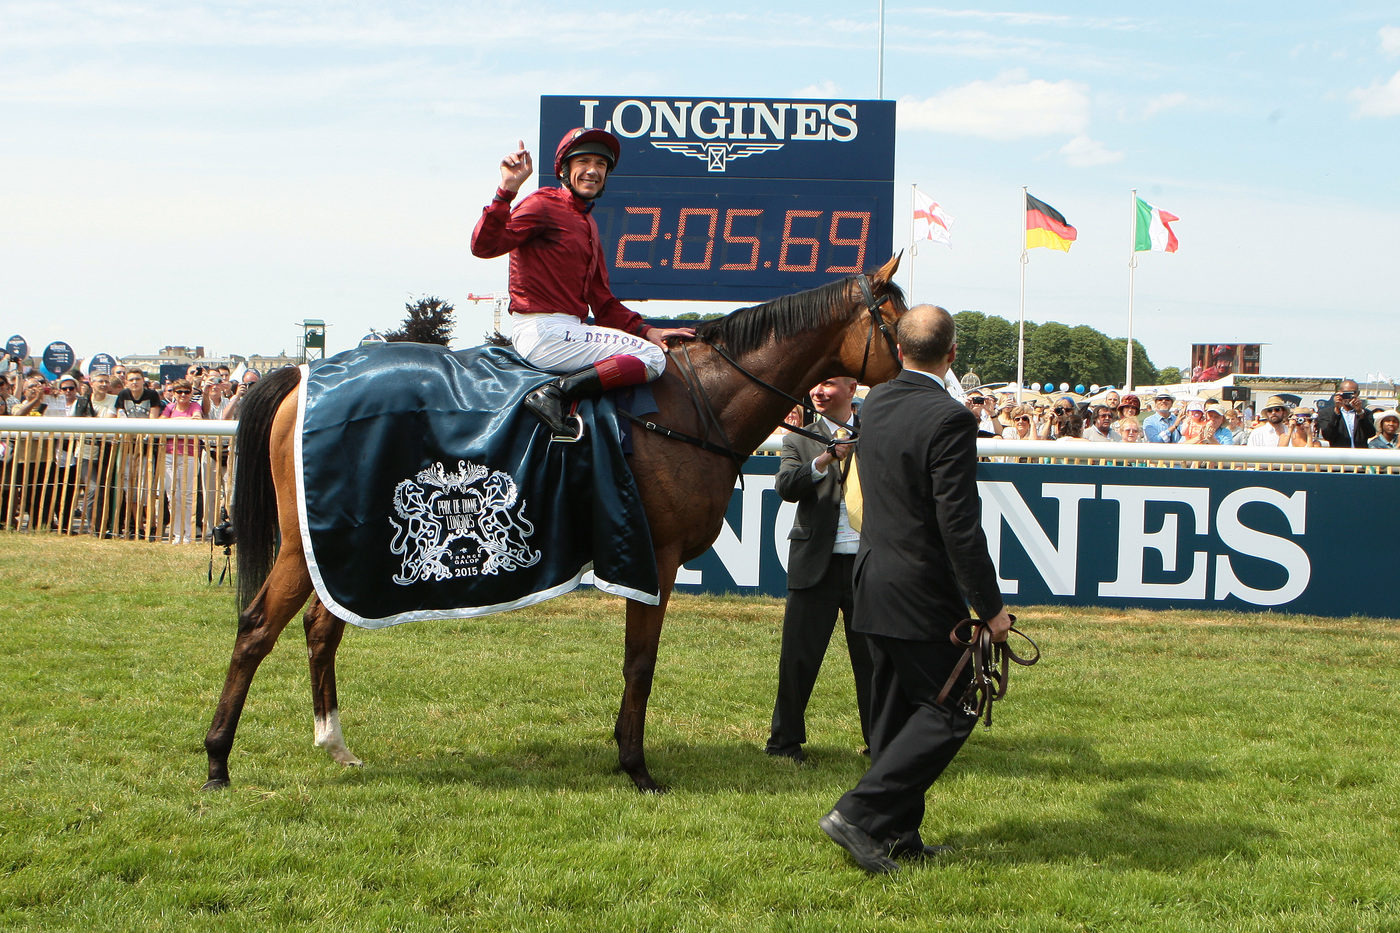 Longines Flat Racing Event: The Prix de Diane Longines – 45'000 spectators, 9 races, 1 Queen of Elegance and 1 King of the Prix de Diane Longines 6